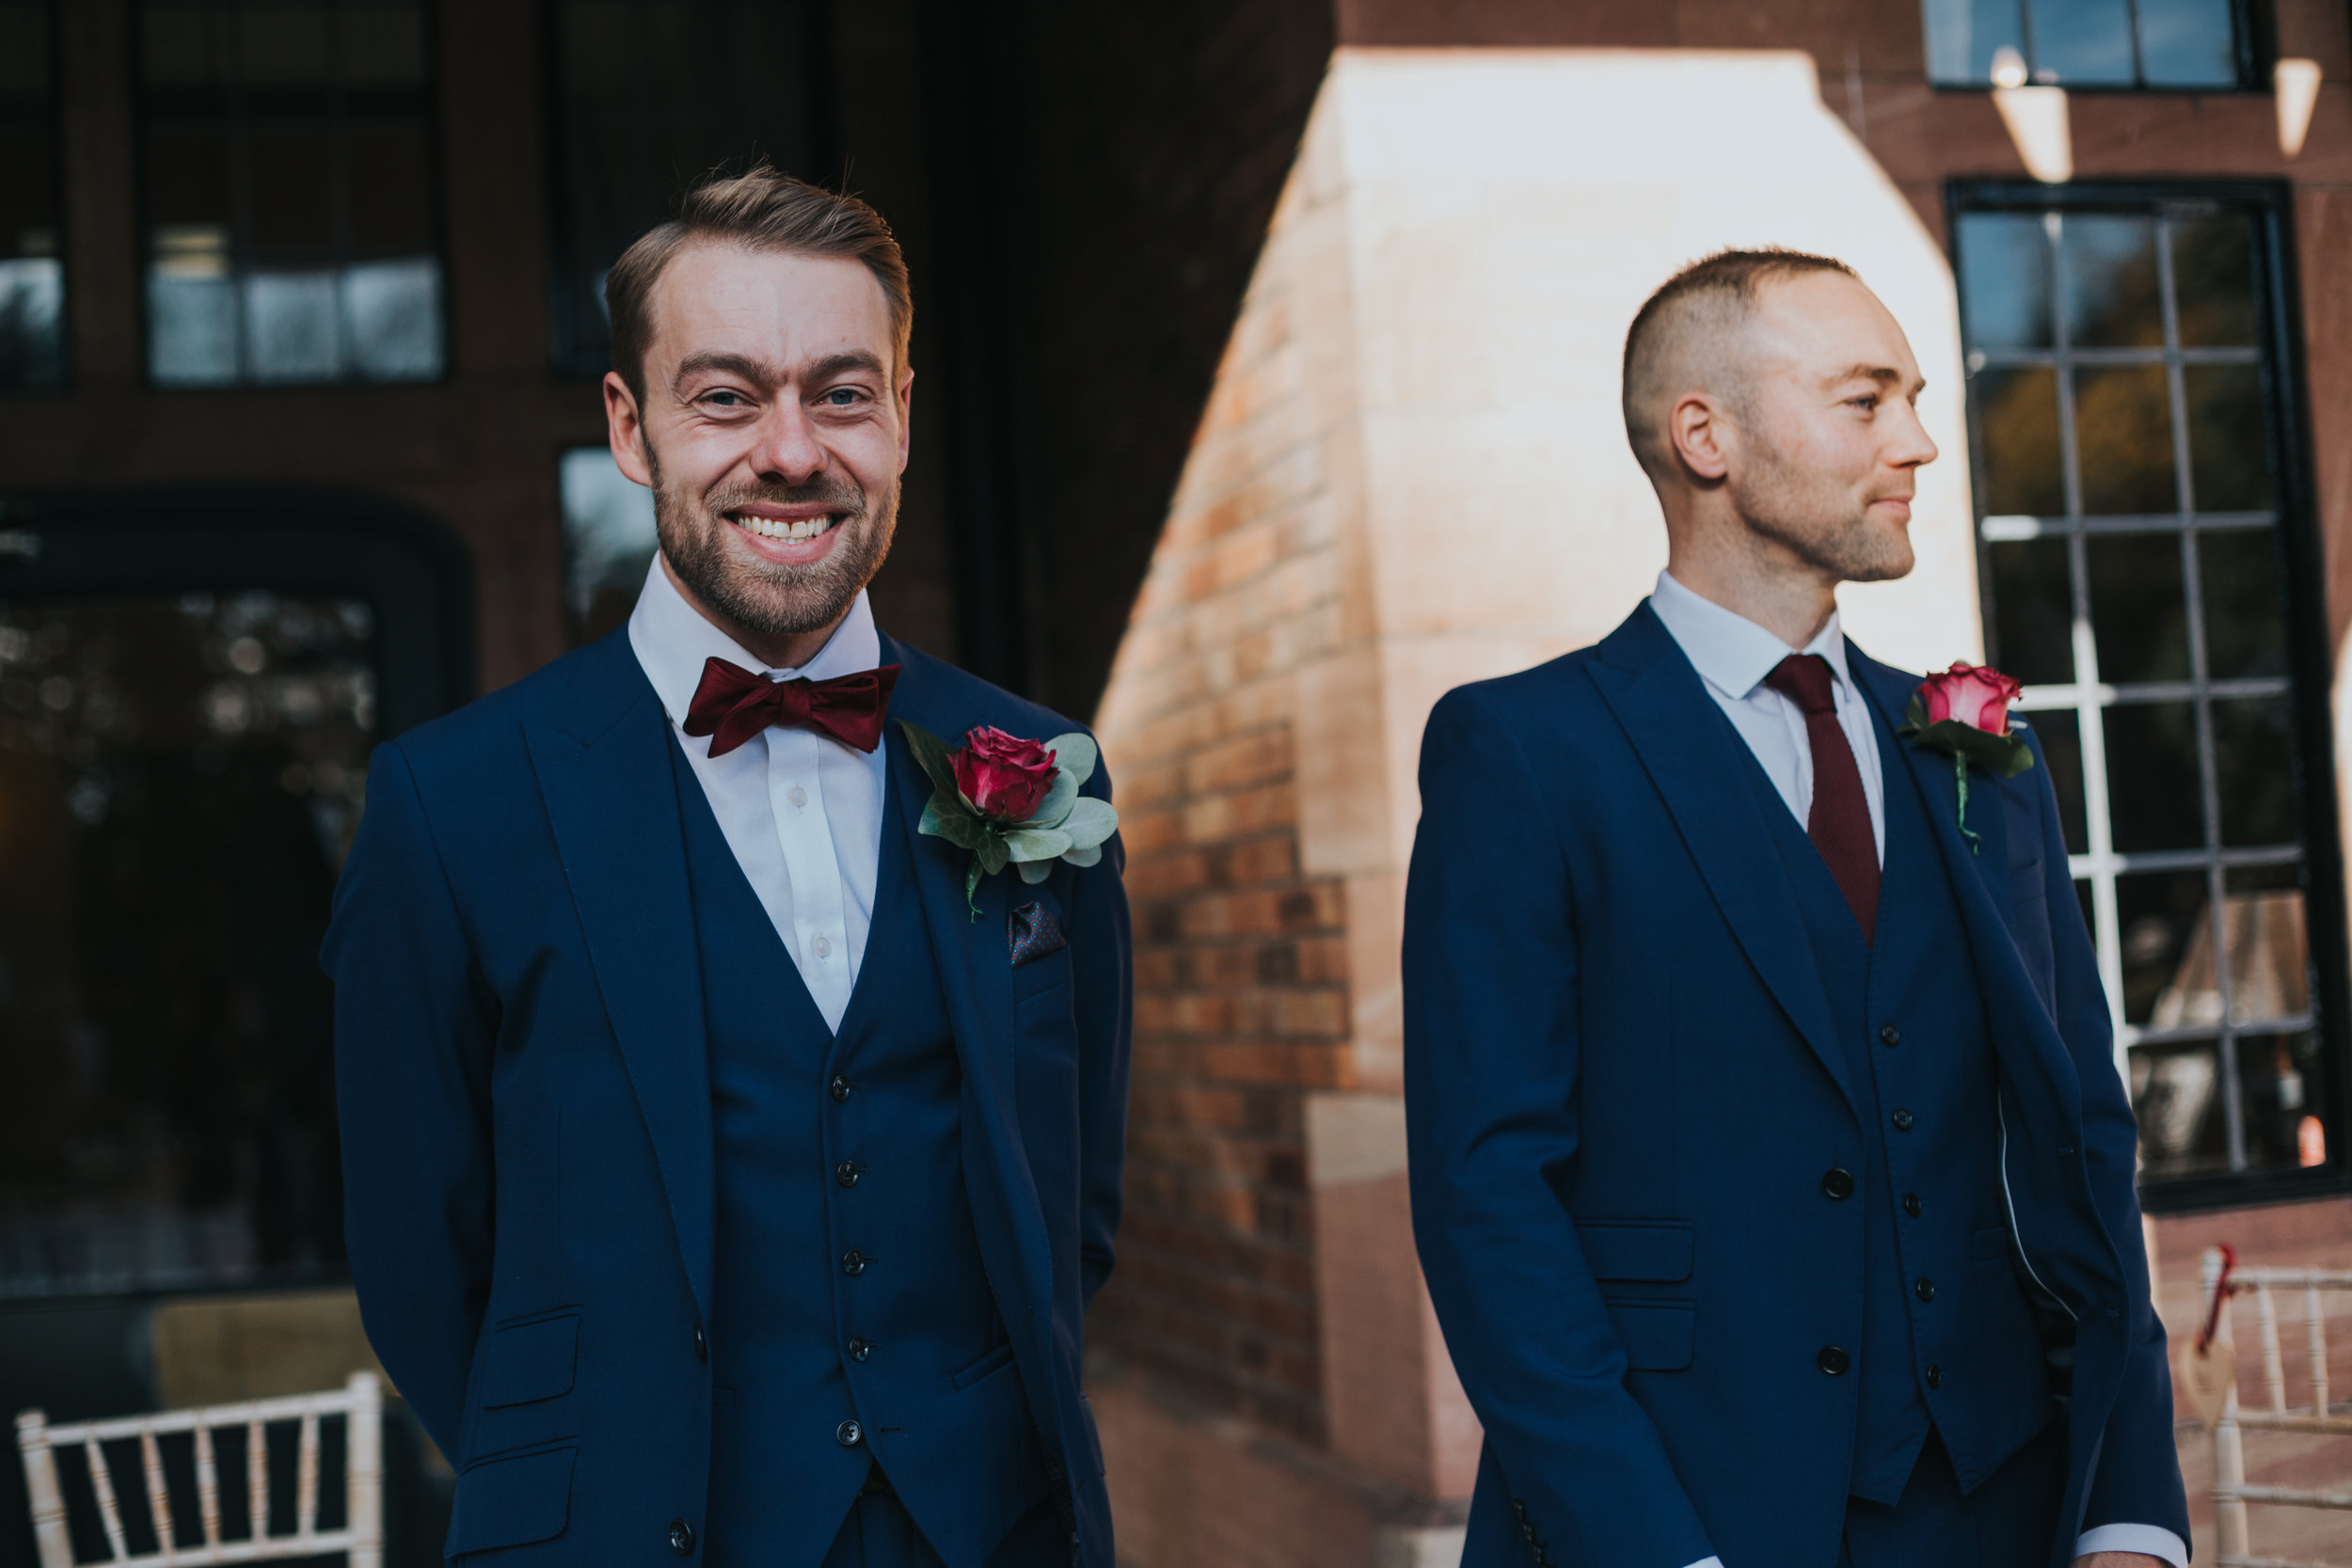 The groom and his best man stand smiling awaiting their guests at their outdoor ceremony at Inglewood Manor.